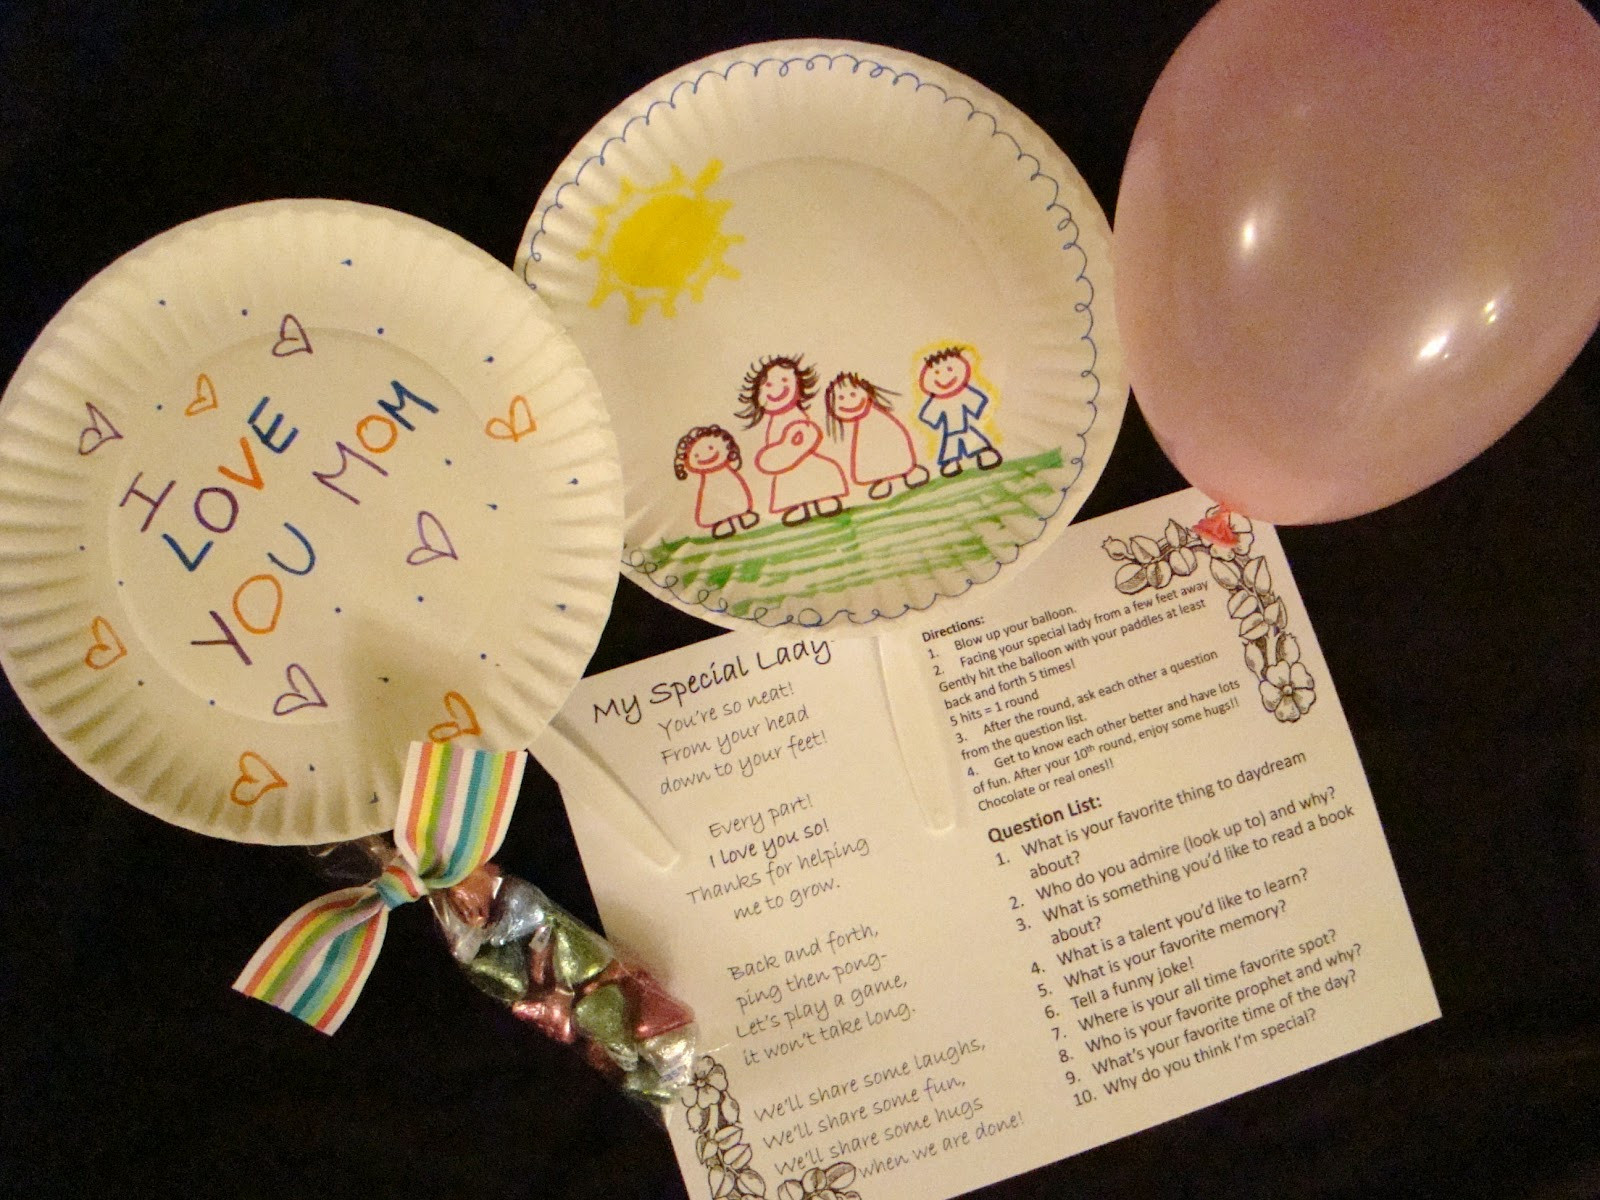 Best ideas about Mother'S Day Gift Ideas For Church . Save or Pin Sofia s Primary Ideas 2012 LDS Primary Mother s Day Gift Idea Now.